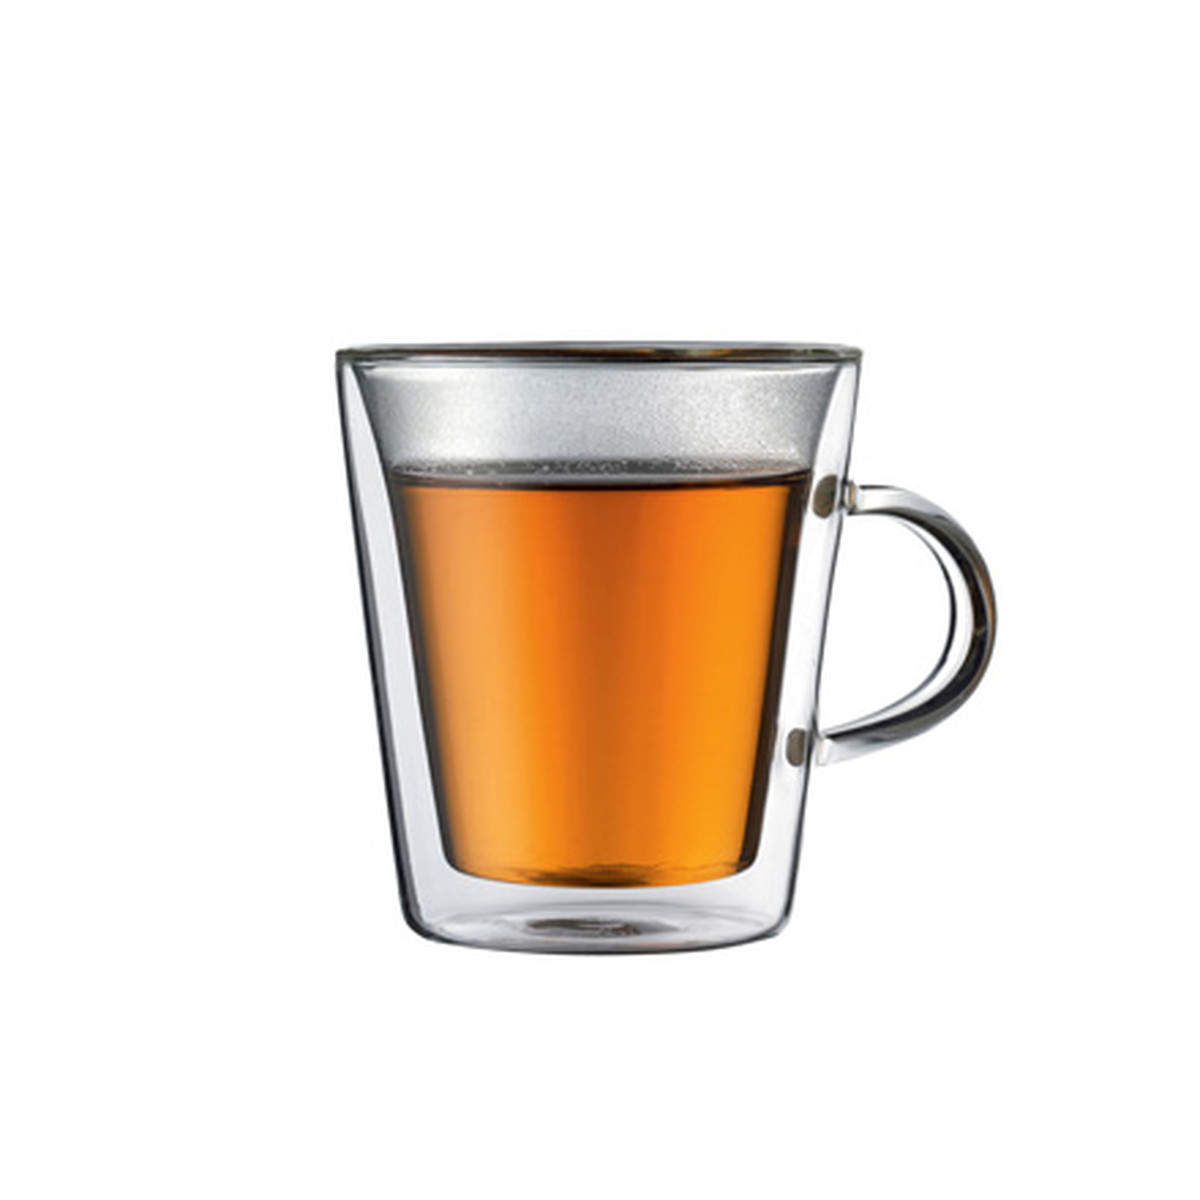 BODUM Cup with handle